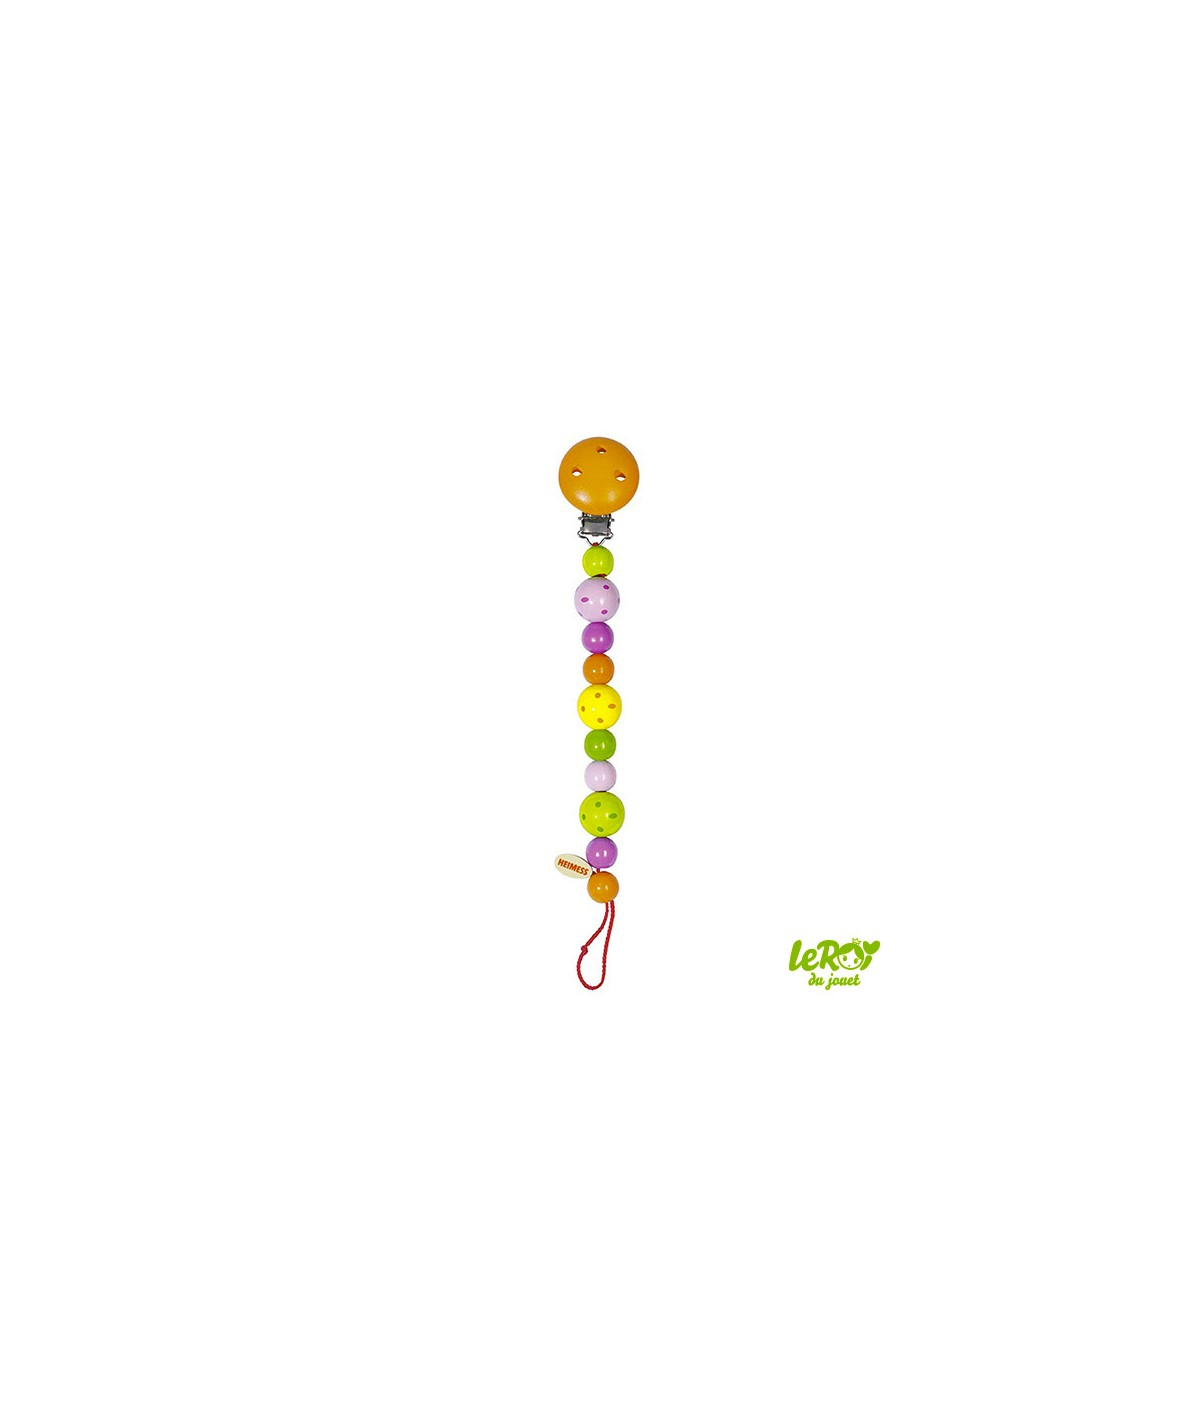 copy of Africa pacifier holder